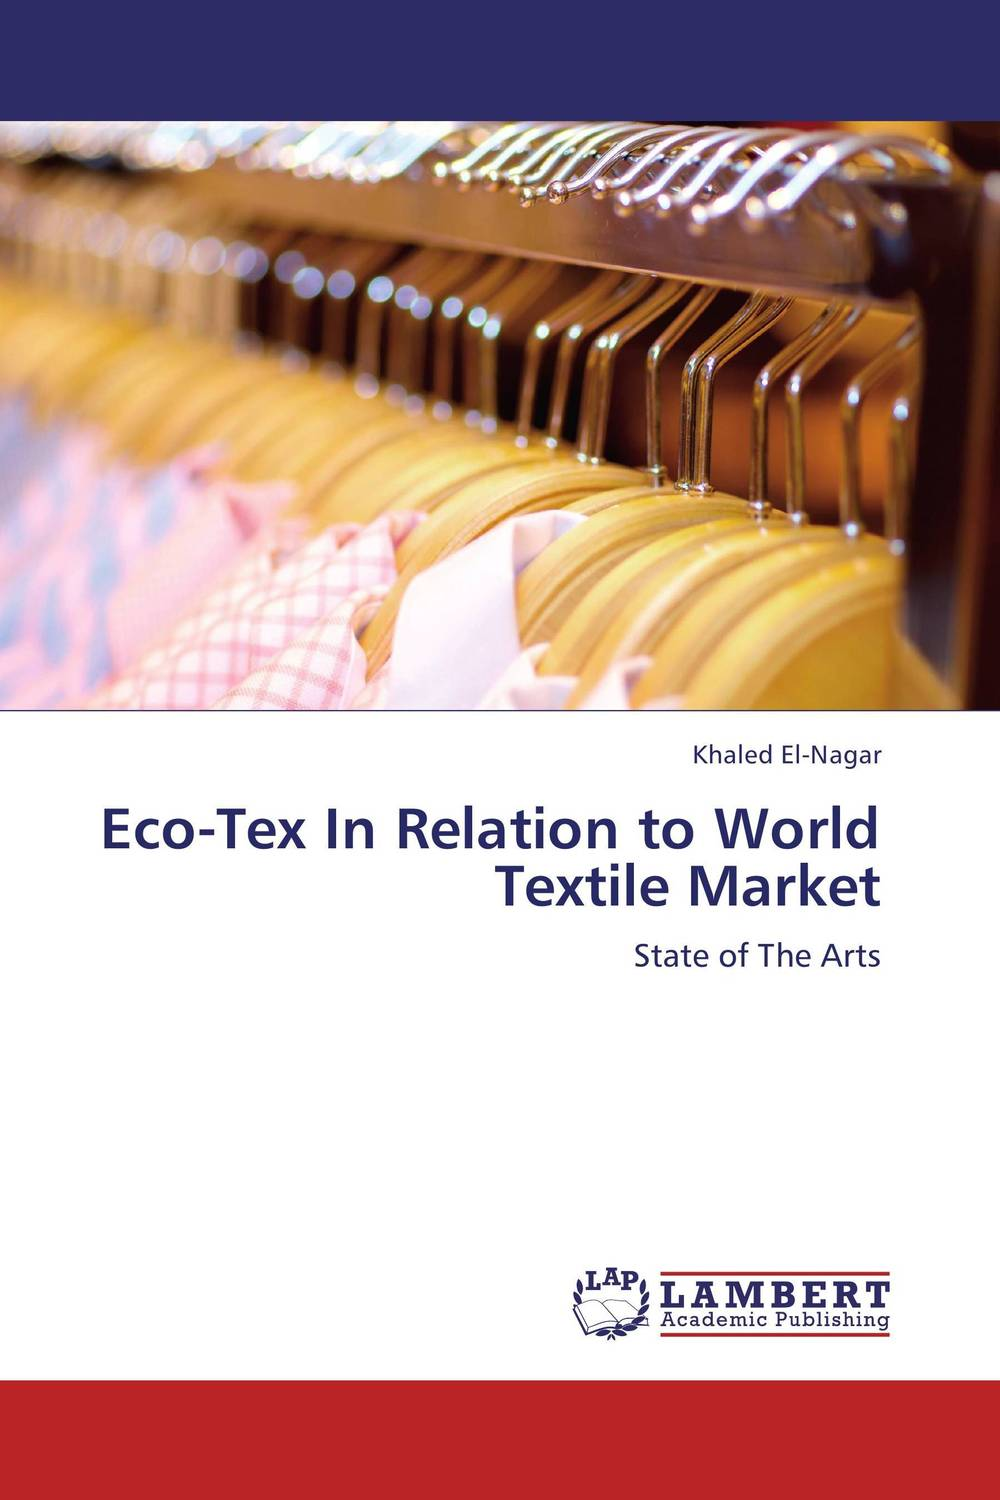 Eco-Tex In Relation to World Textile Market eco friendly dyeing of silk with natural dye